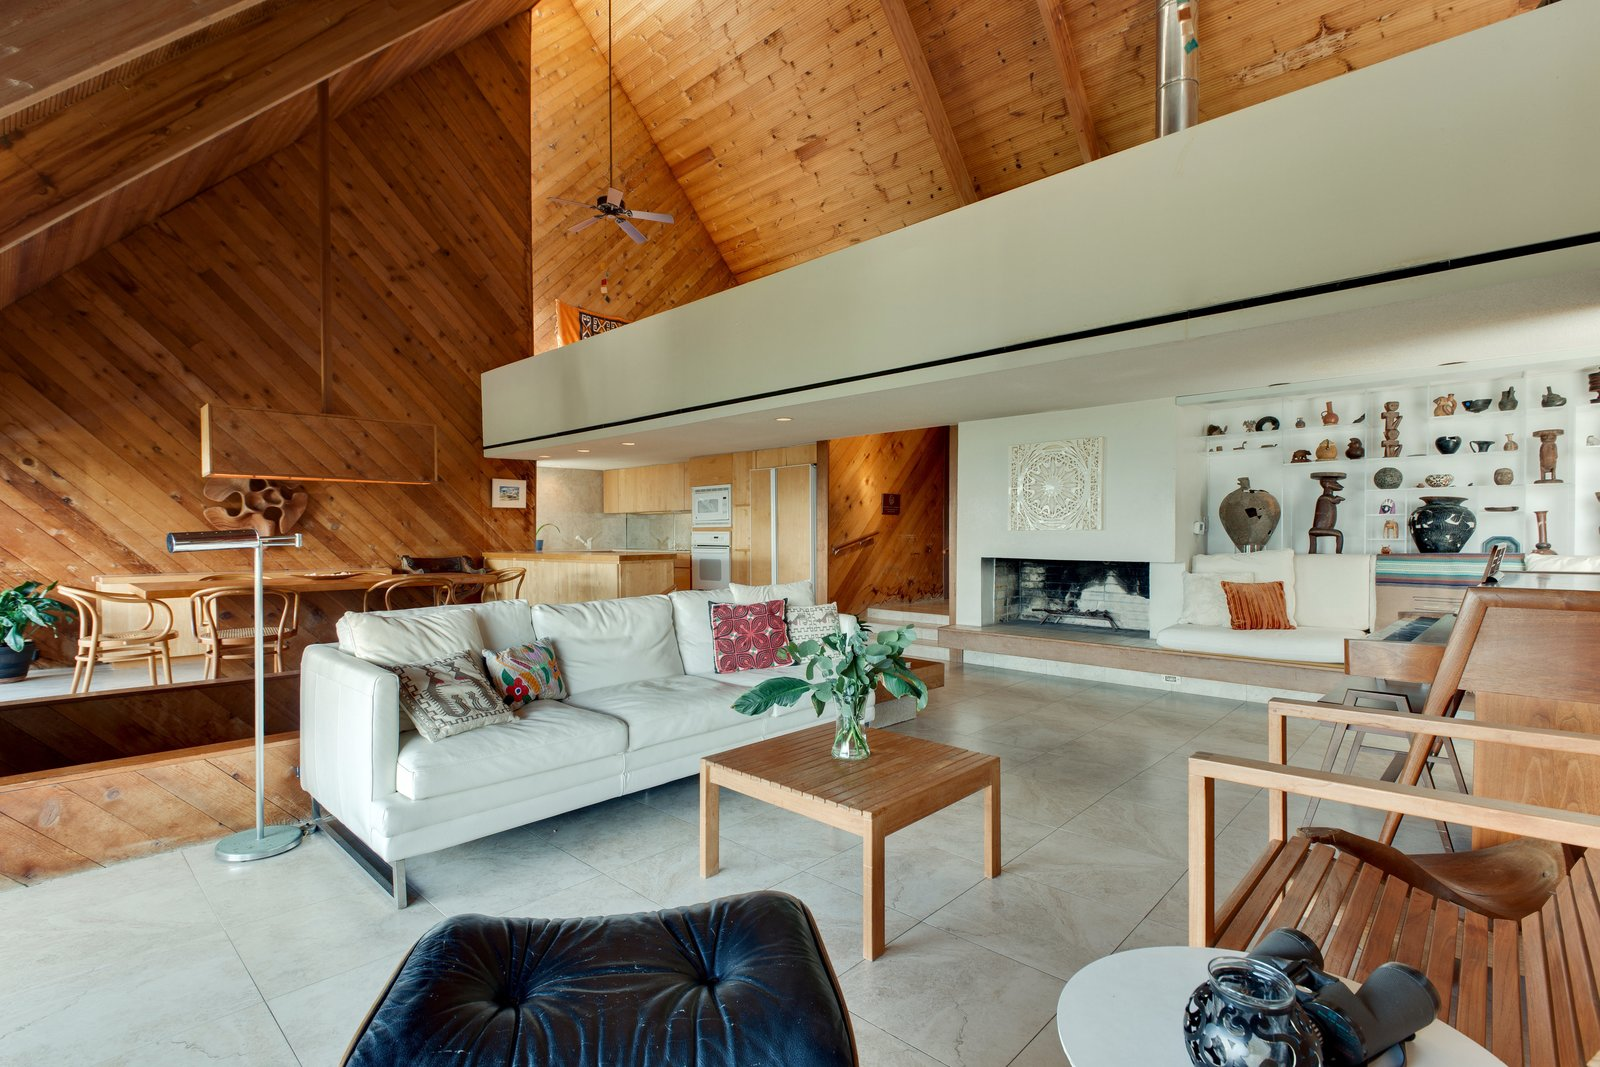 Living Room, Wood Burning Fireplace, Chair, and Sofa  Photo 9 of 13 in A Renowned Florida Architect's Geometric Family Home Hits the Market For the First Time